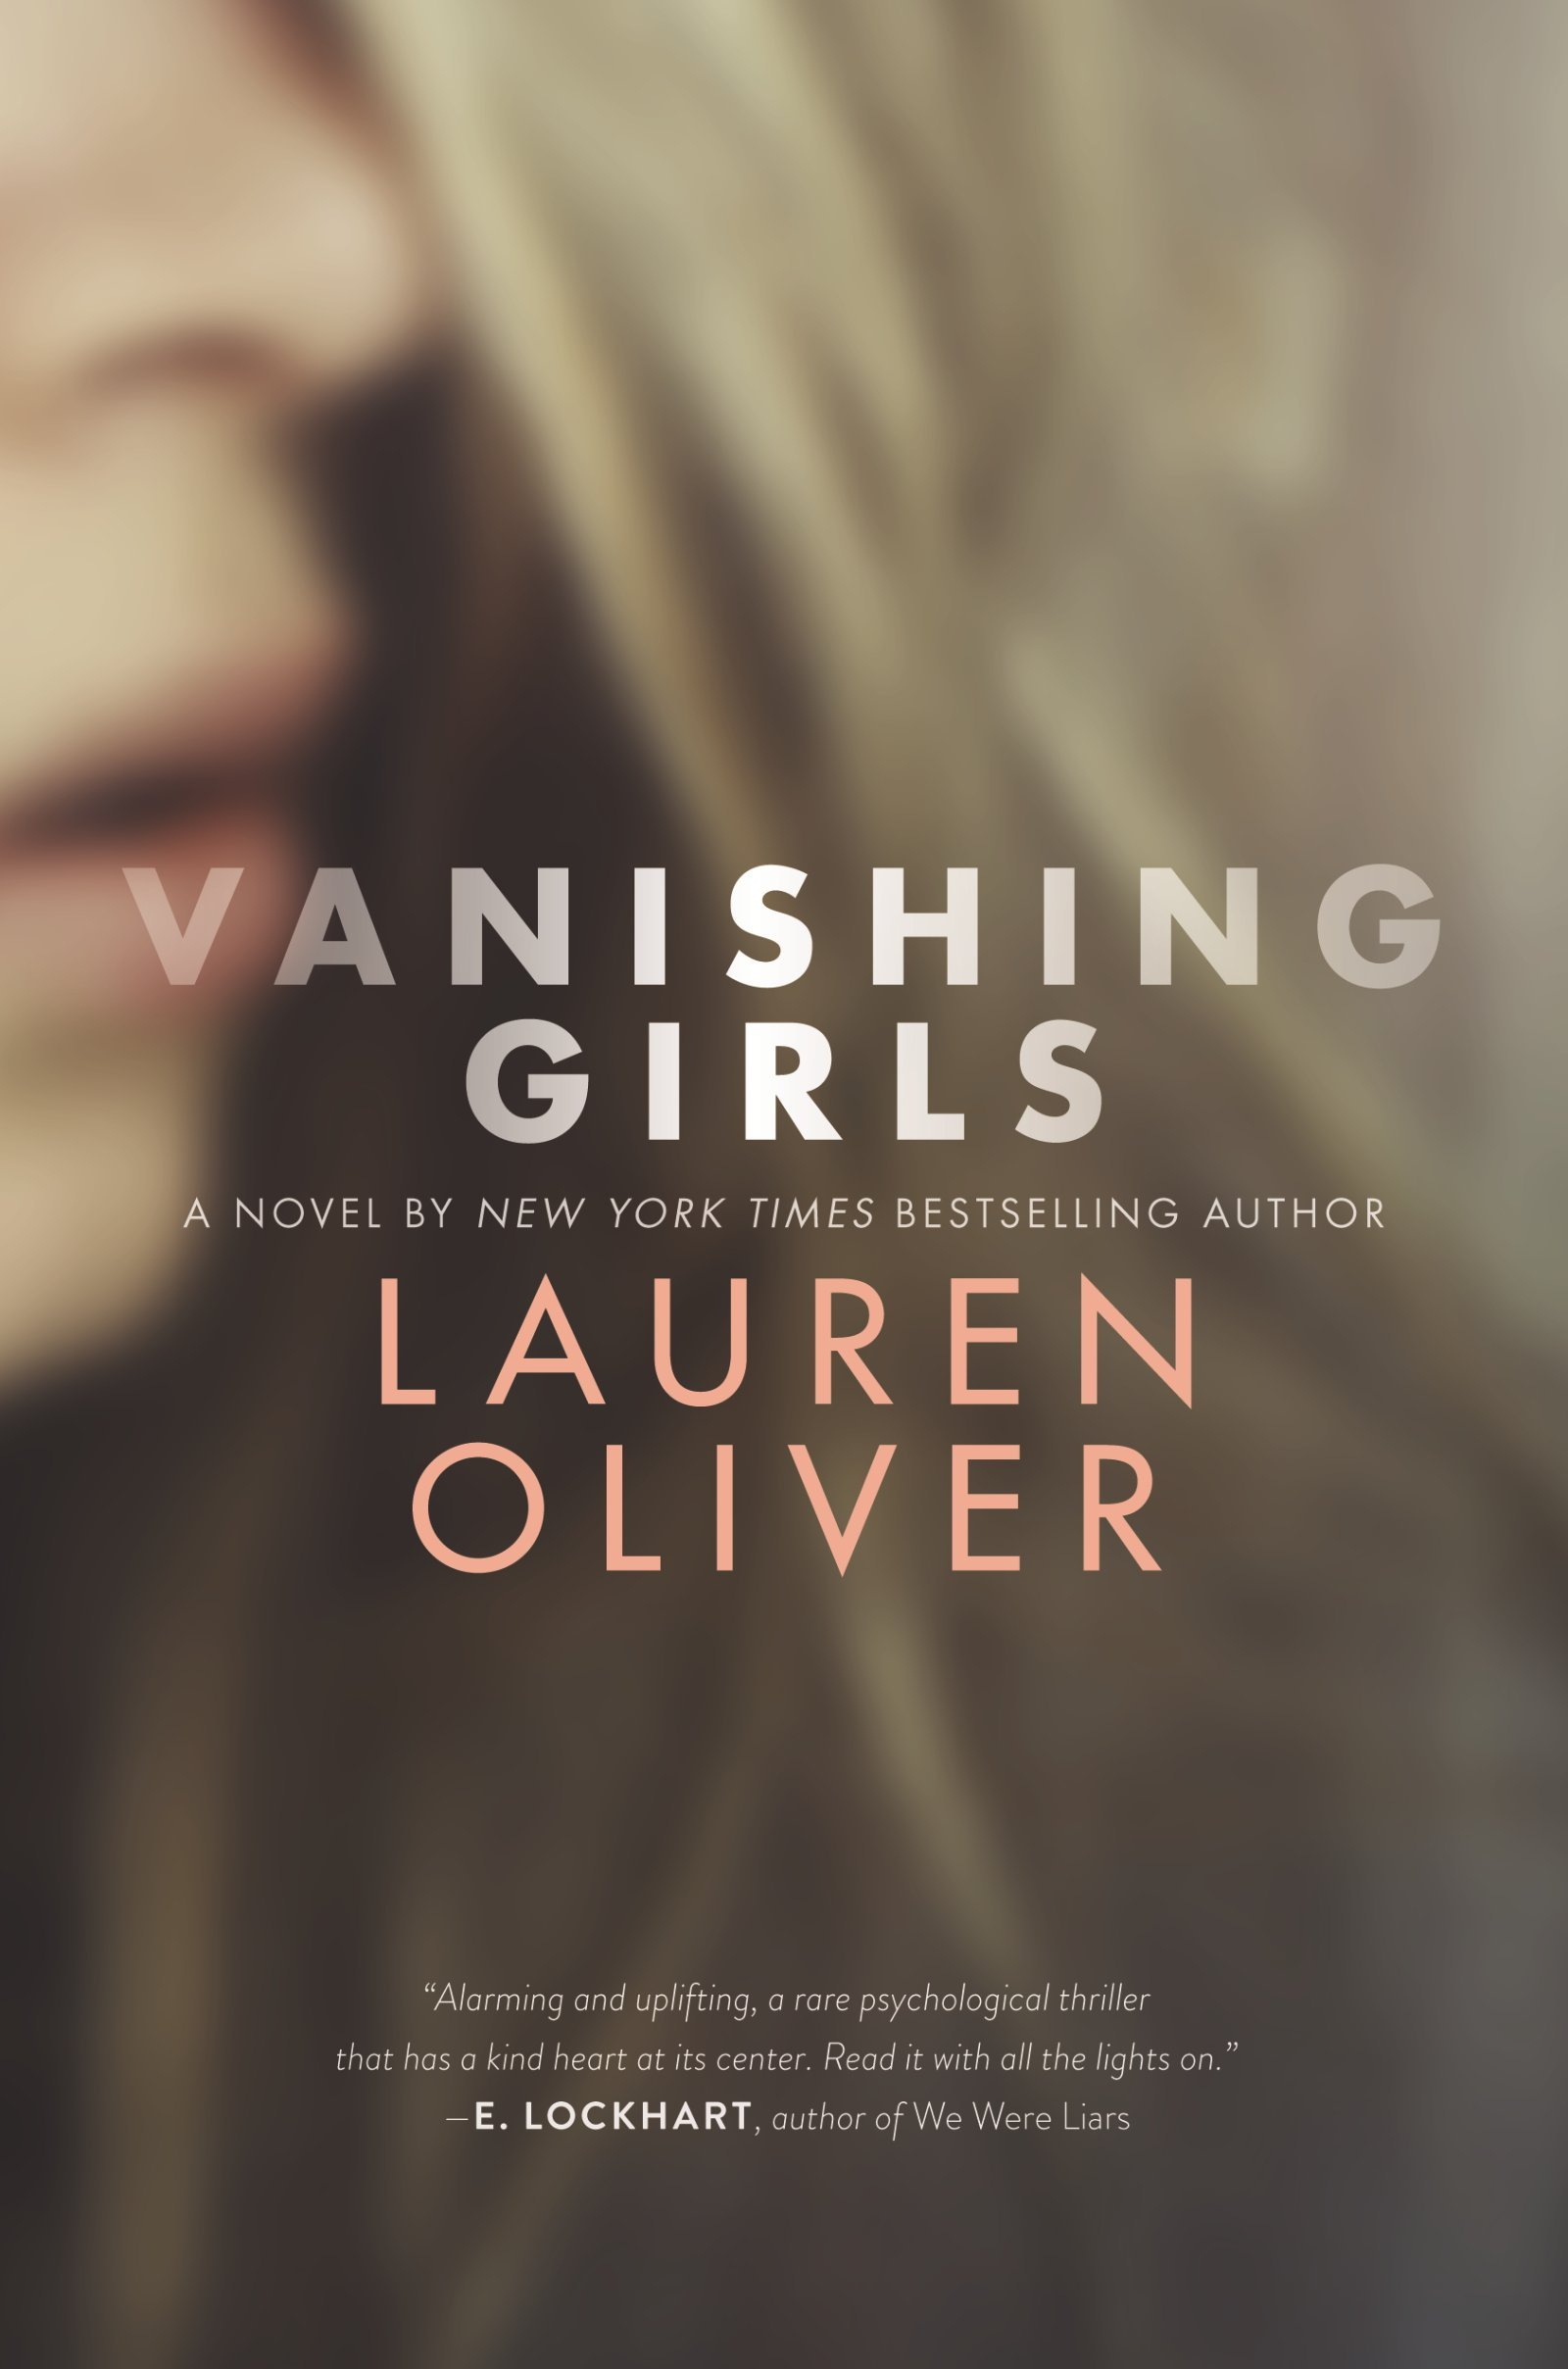 http://redwing.lib.mn.us/wp-content/uploads/2015/04/vanishing-girls.jpg